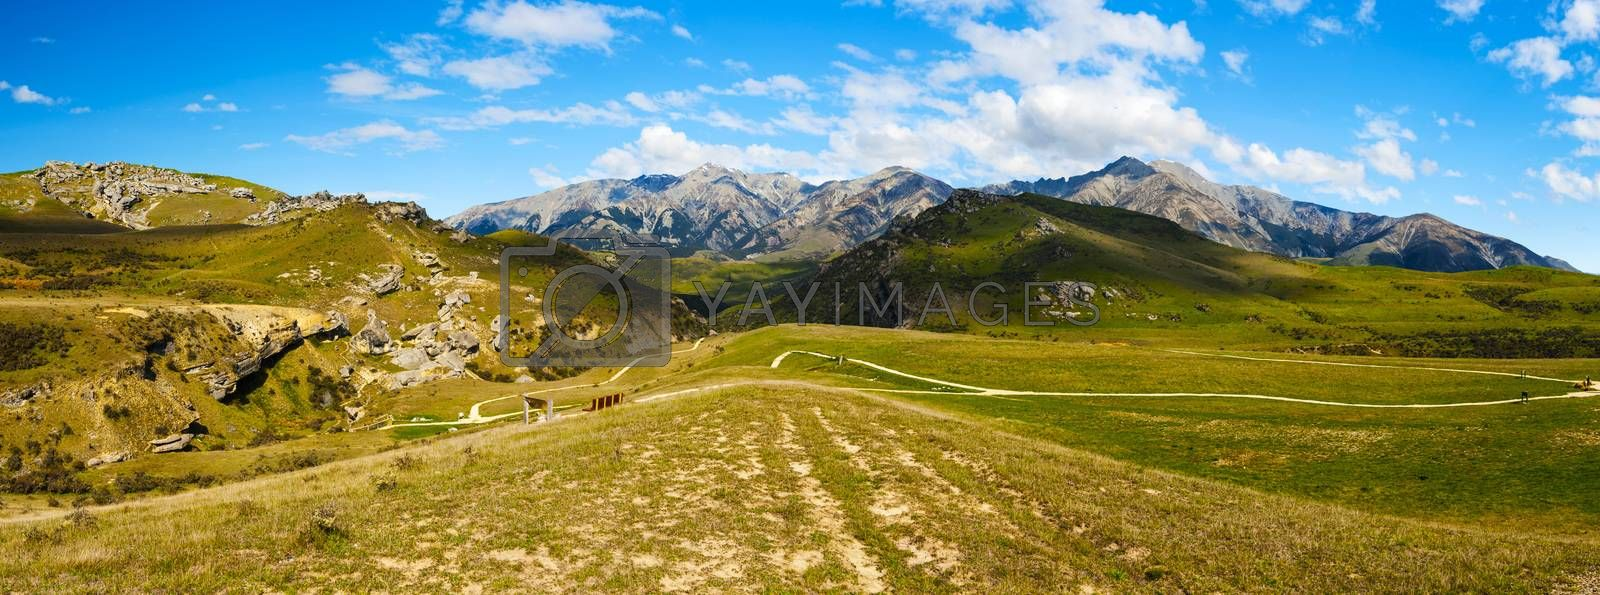 Vivid panoramic photo of mountains at Castle Hill. This area is well known to climbers and people liking bouldering. Kura Tawhiti - as it is called by native Maori is a place of spiritual importance as well. Canterbury, New Zealand